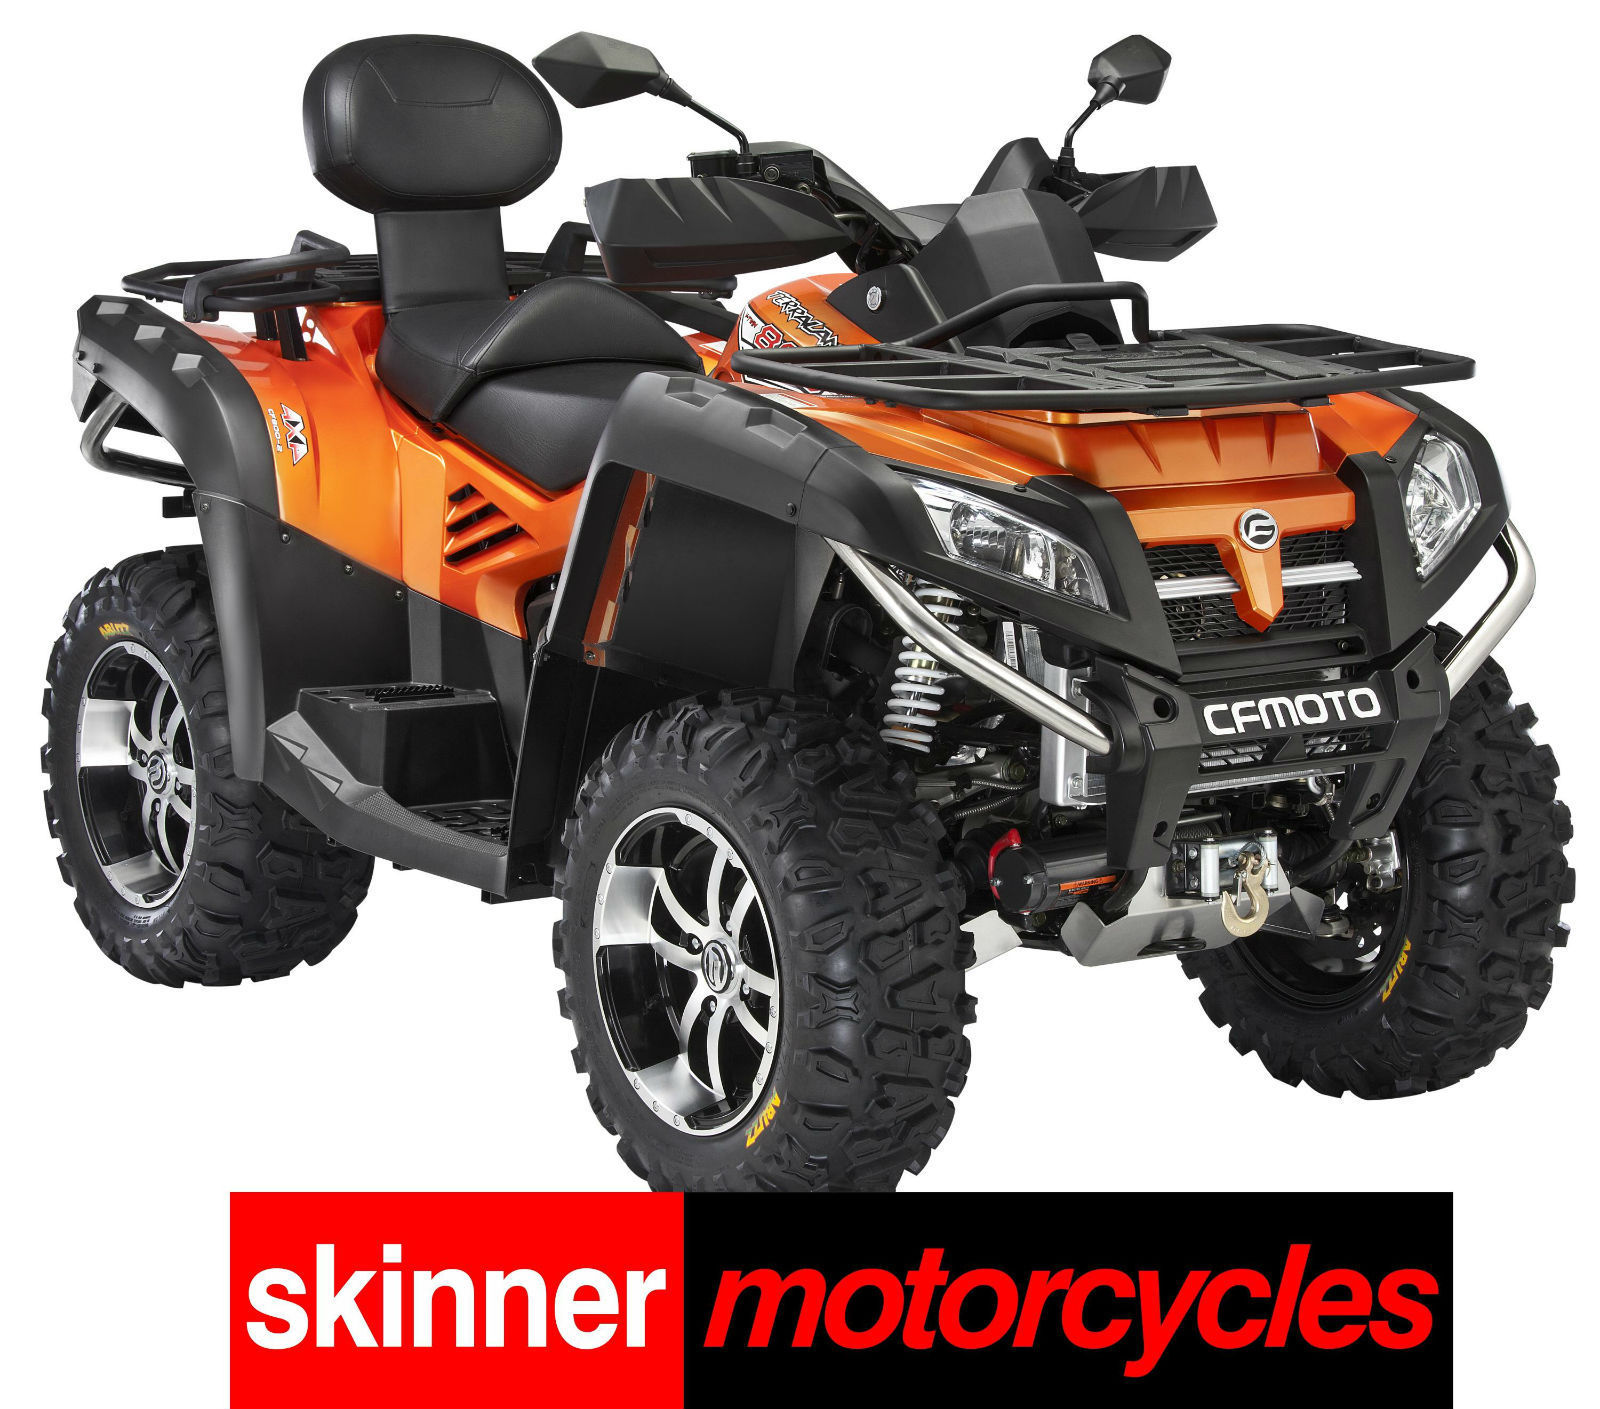 V Twin Quad Engine: QUADZILLA X8 EPS 4x4 EFI V-TWIN ELECTRONIC POWER STEERING